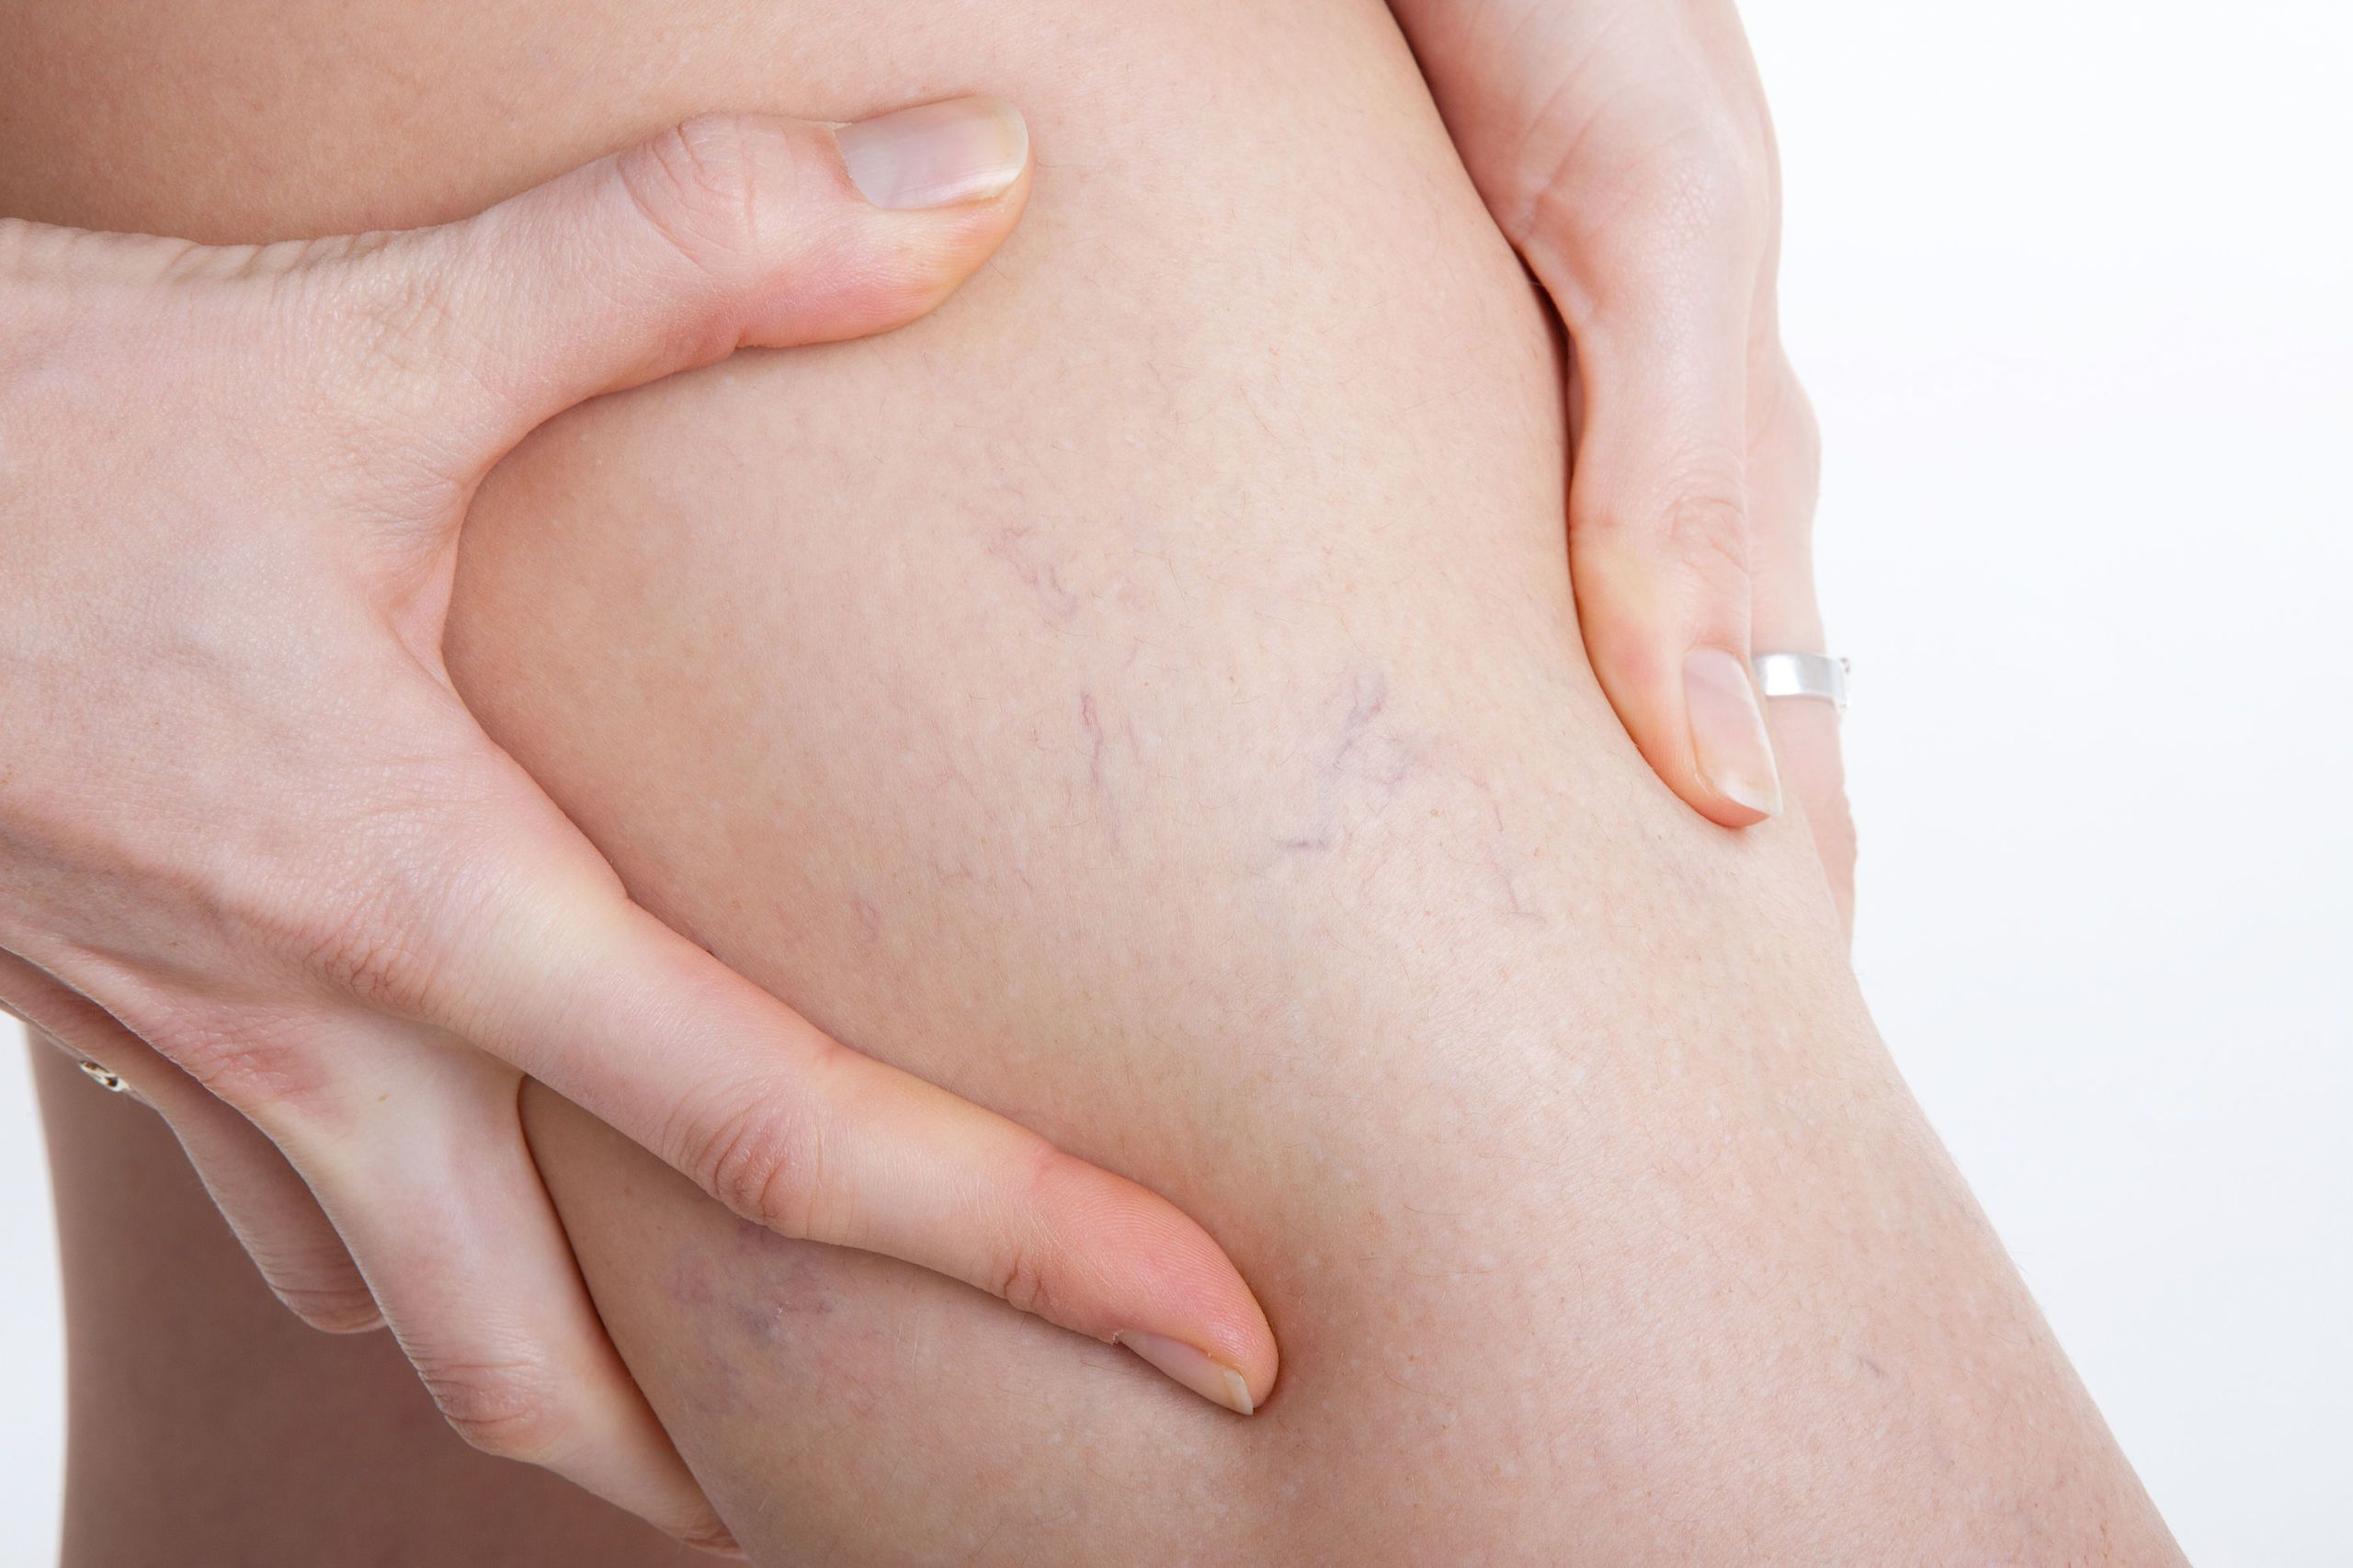 how to hide varicose veins on legs